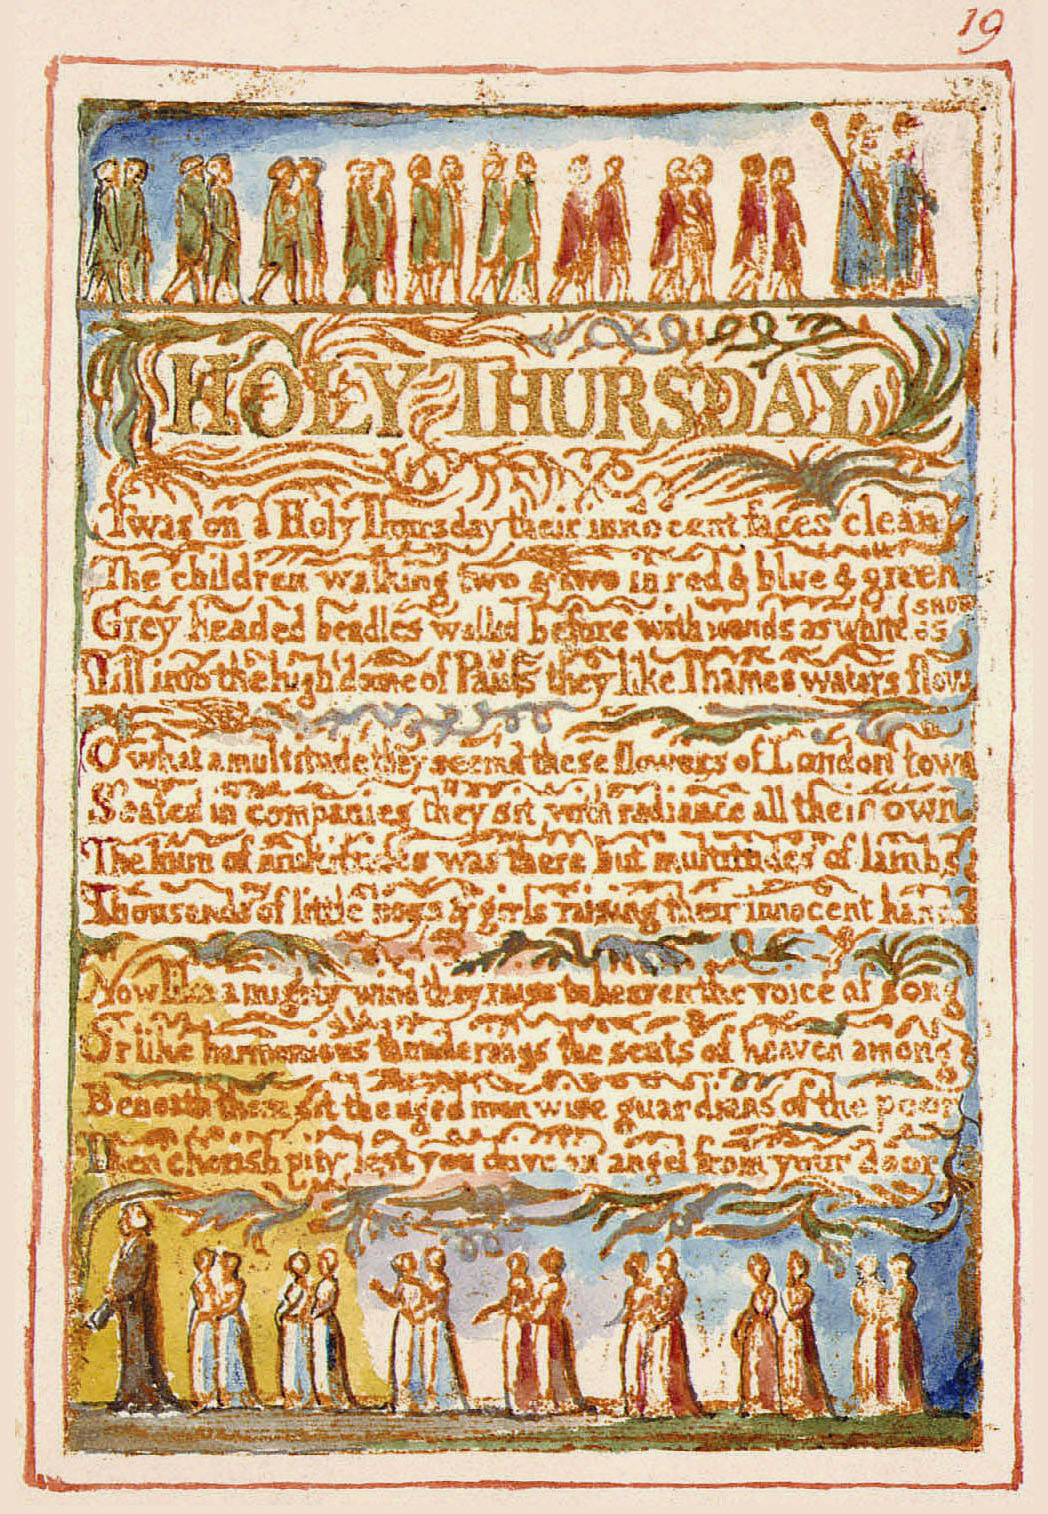 an analysis of songs of innocence and experience by william blakes In studying blake's songs of innocence and experience (which had merged into  one work in 1794) we must not forget that not only is each individual poem.